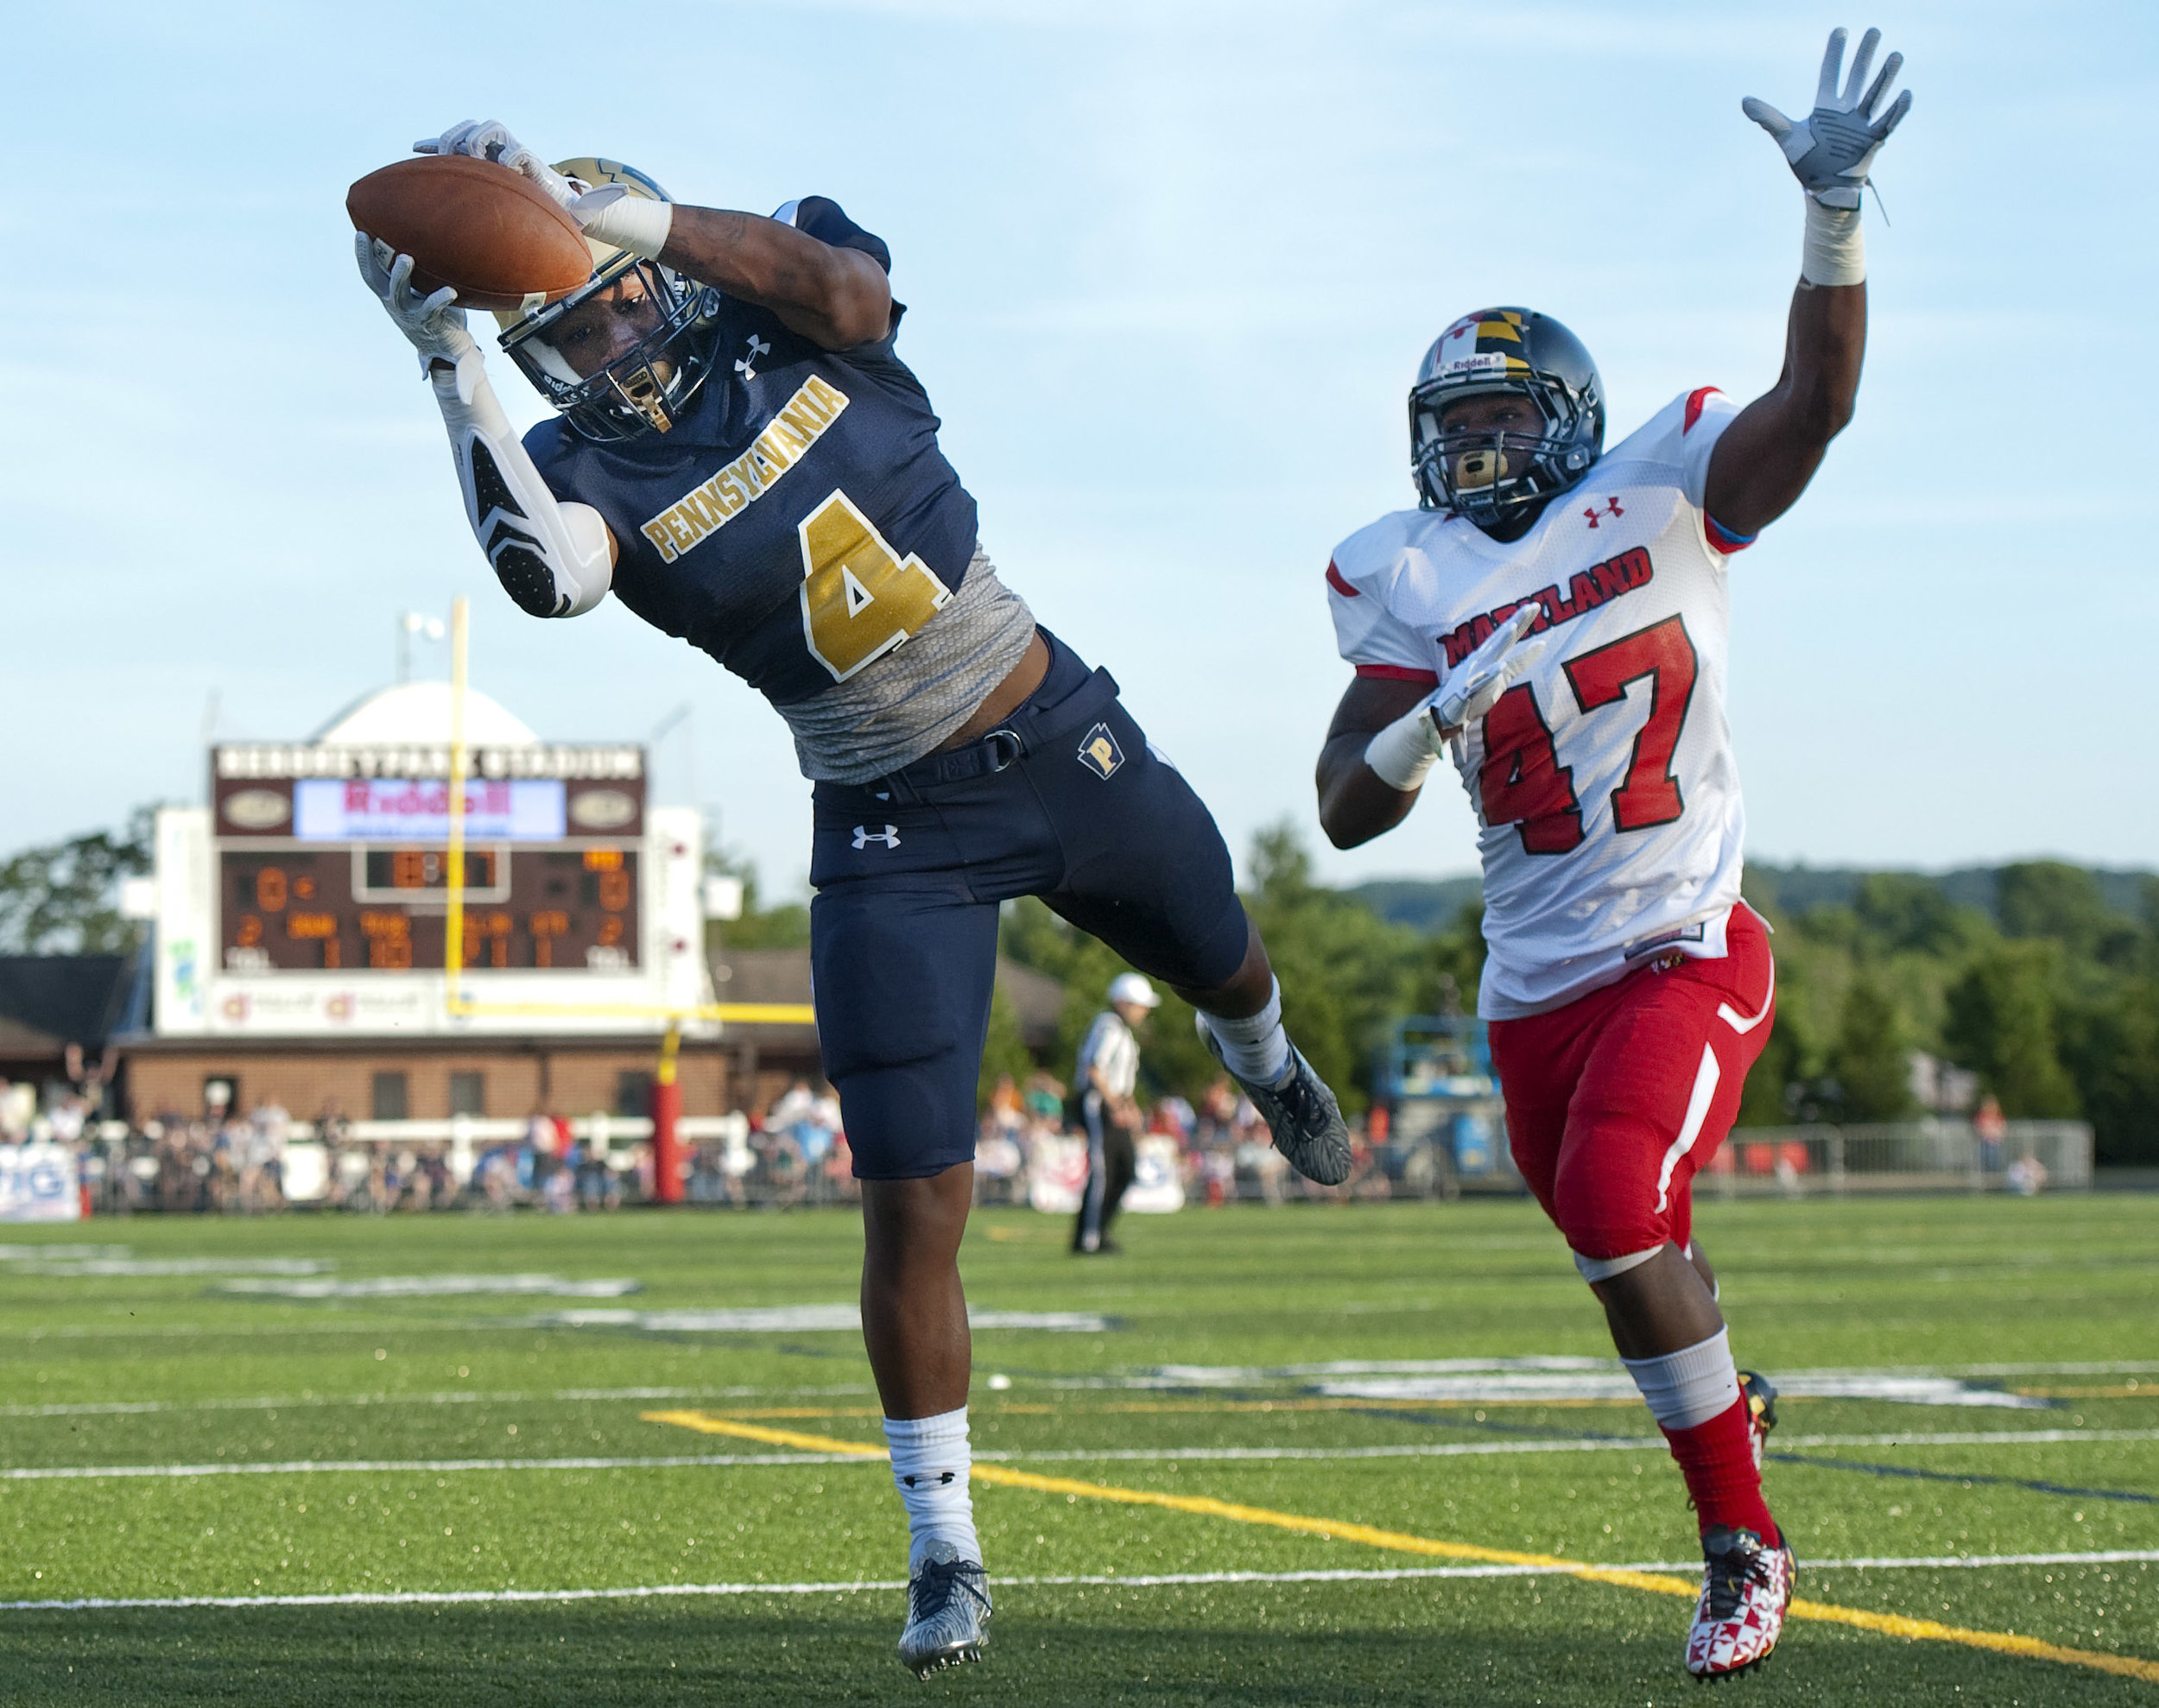 Pennsylvania's Miles Sanders (Woodland Hills, Penn State) makes a leaping catch for a touchdown in front of Maryland's Jordan Hill (Paint Branch, Harvard) during the Big 33 Football Classic between Pennsylvania and Maryland on Saturday, June 18, 2016 at Hersheypark Stadium. Pennsylvania won 26-14.